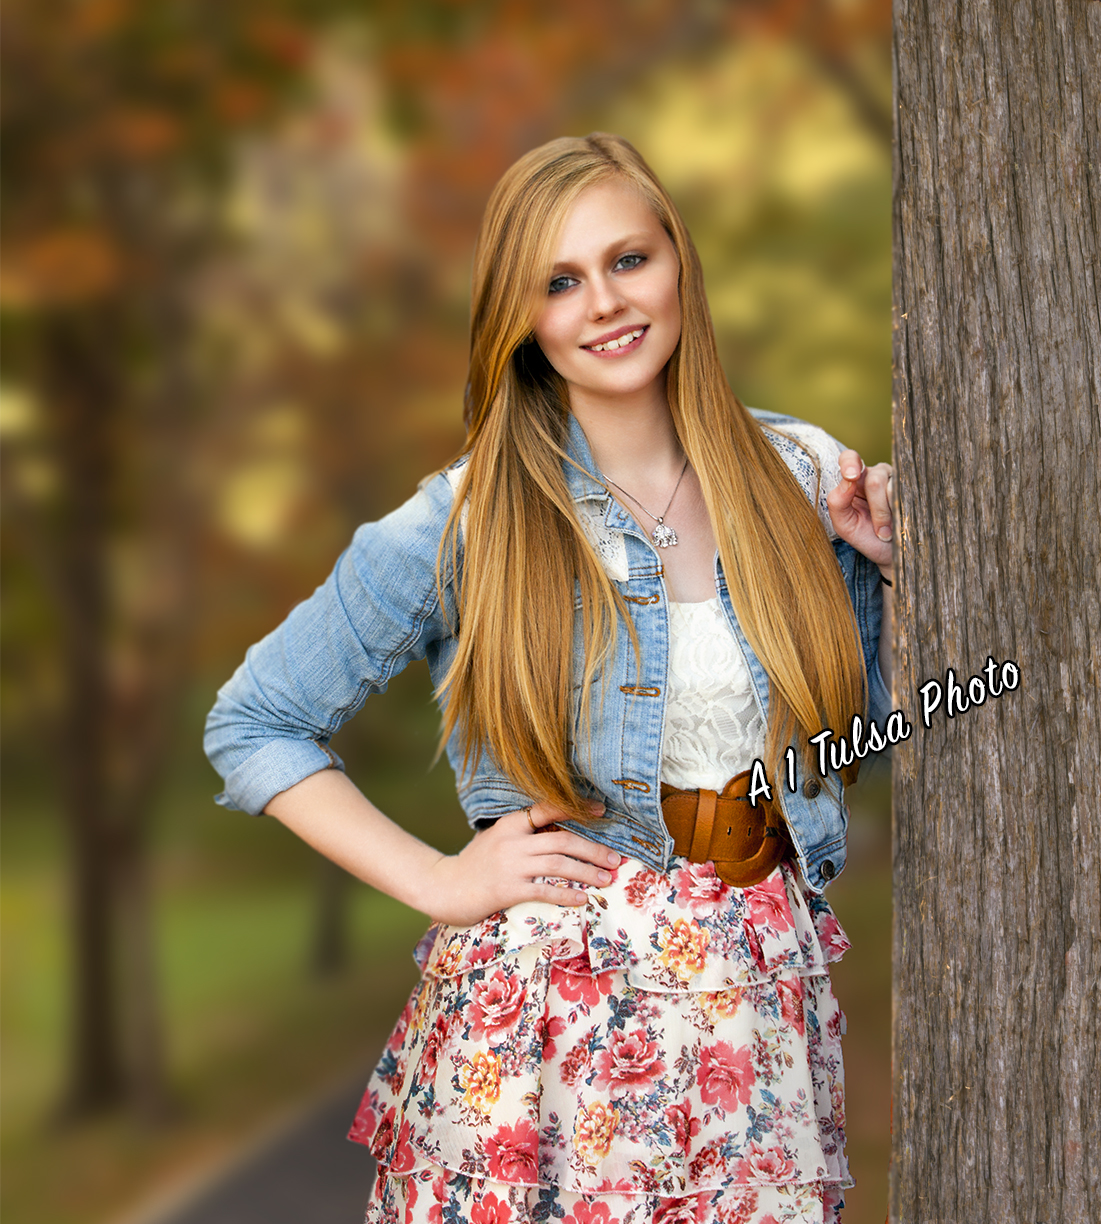 Tulsa Oklahoma senior portrait photographer shoemakerphotographer.co